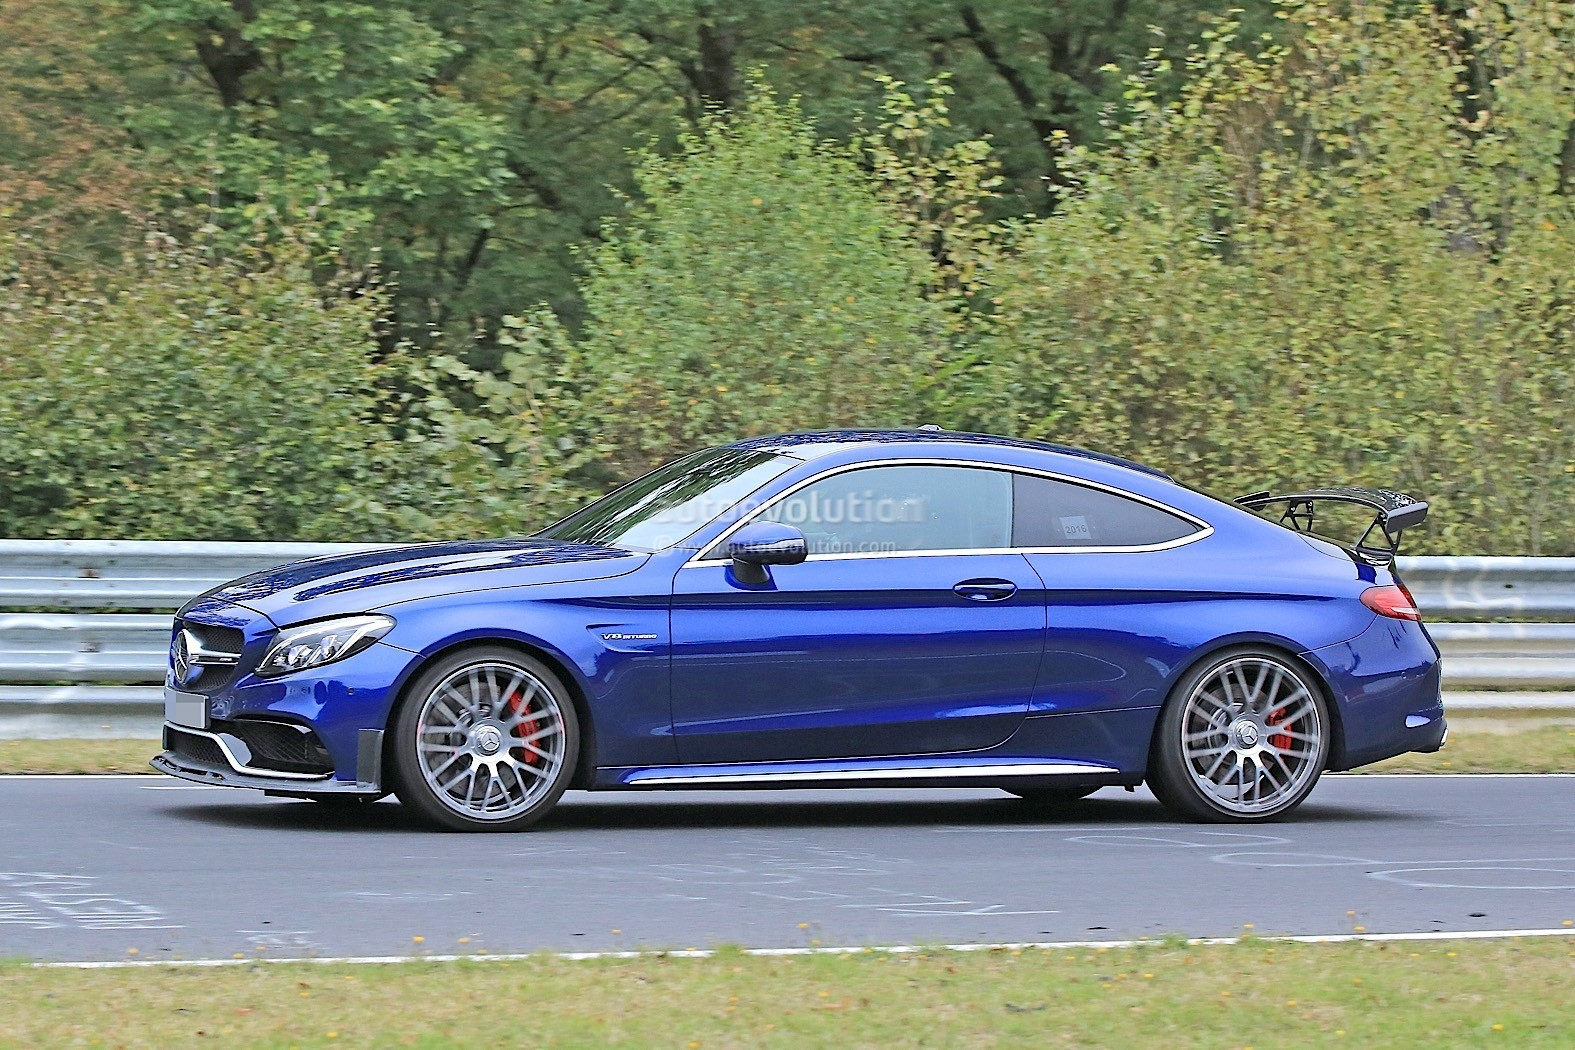 c63 mercedes amg coupe bmw gts party comes m4 crash mbworld benz autoevolution series class spied 4matic fastest track ever